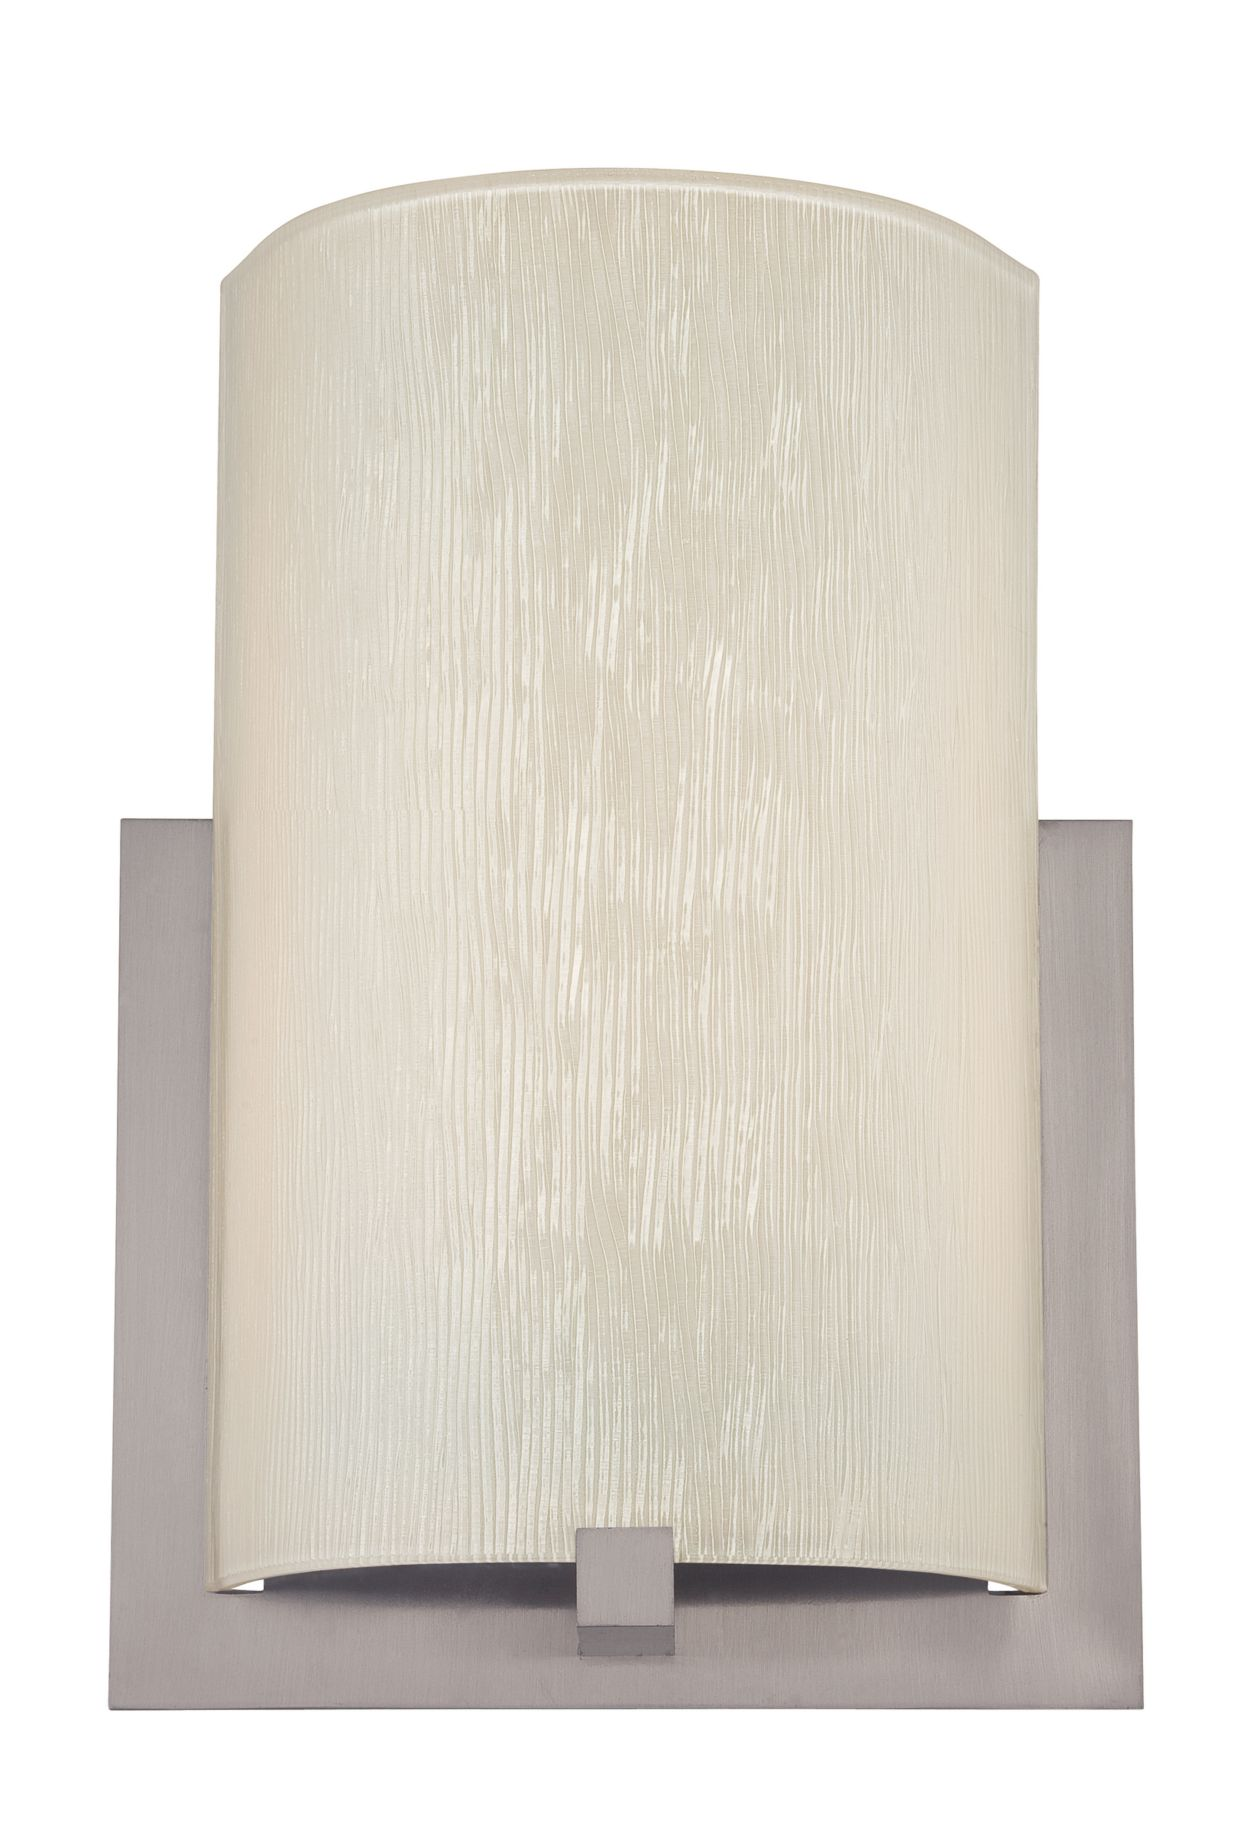 Bow white textured glass shade